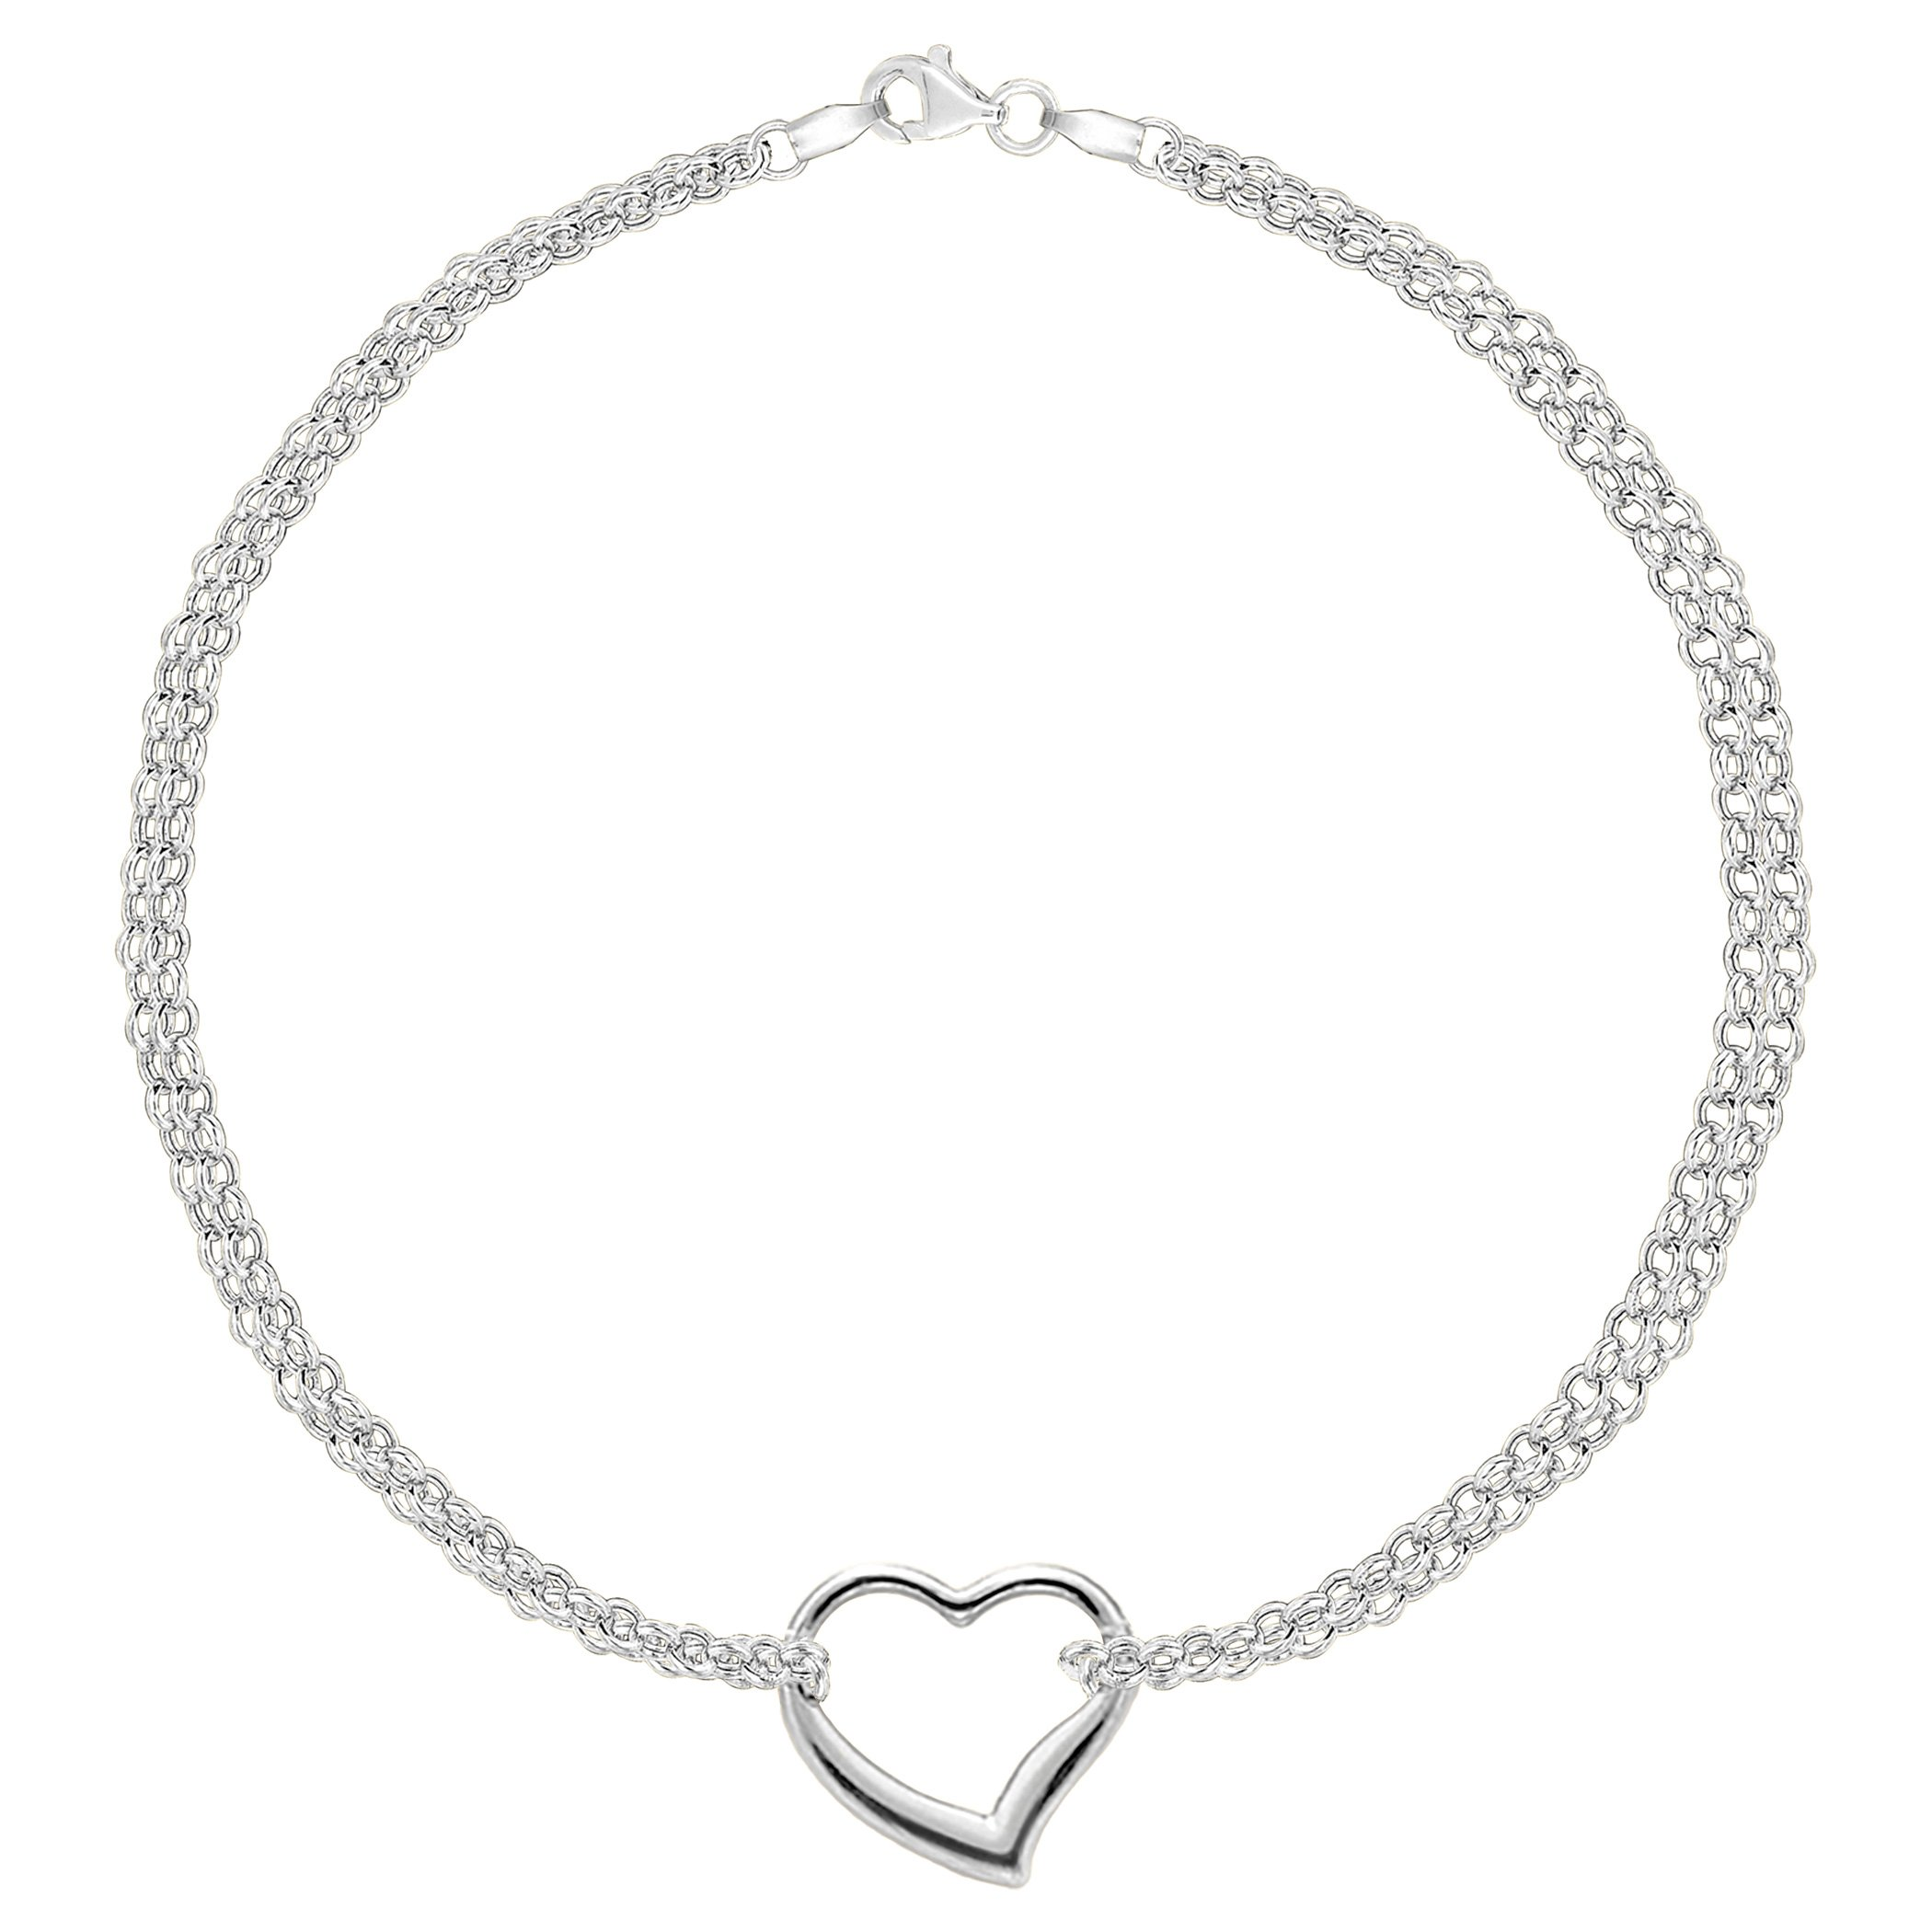 14K White Gold Double Strand With Heart Anklet, 10''